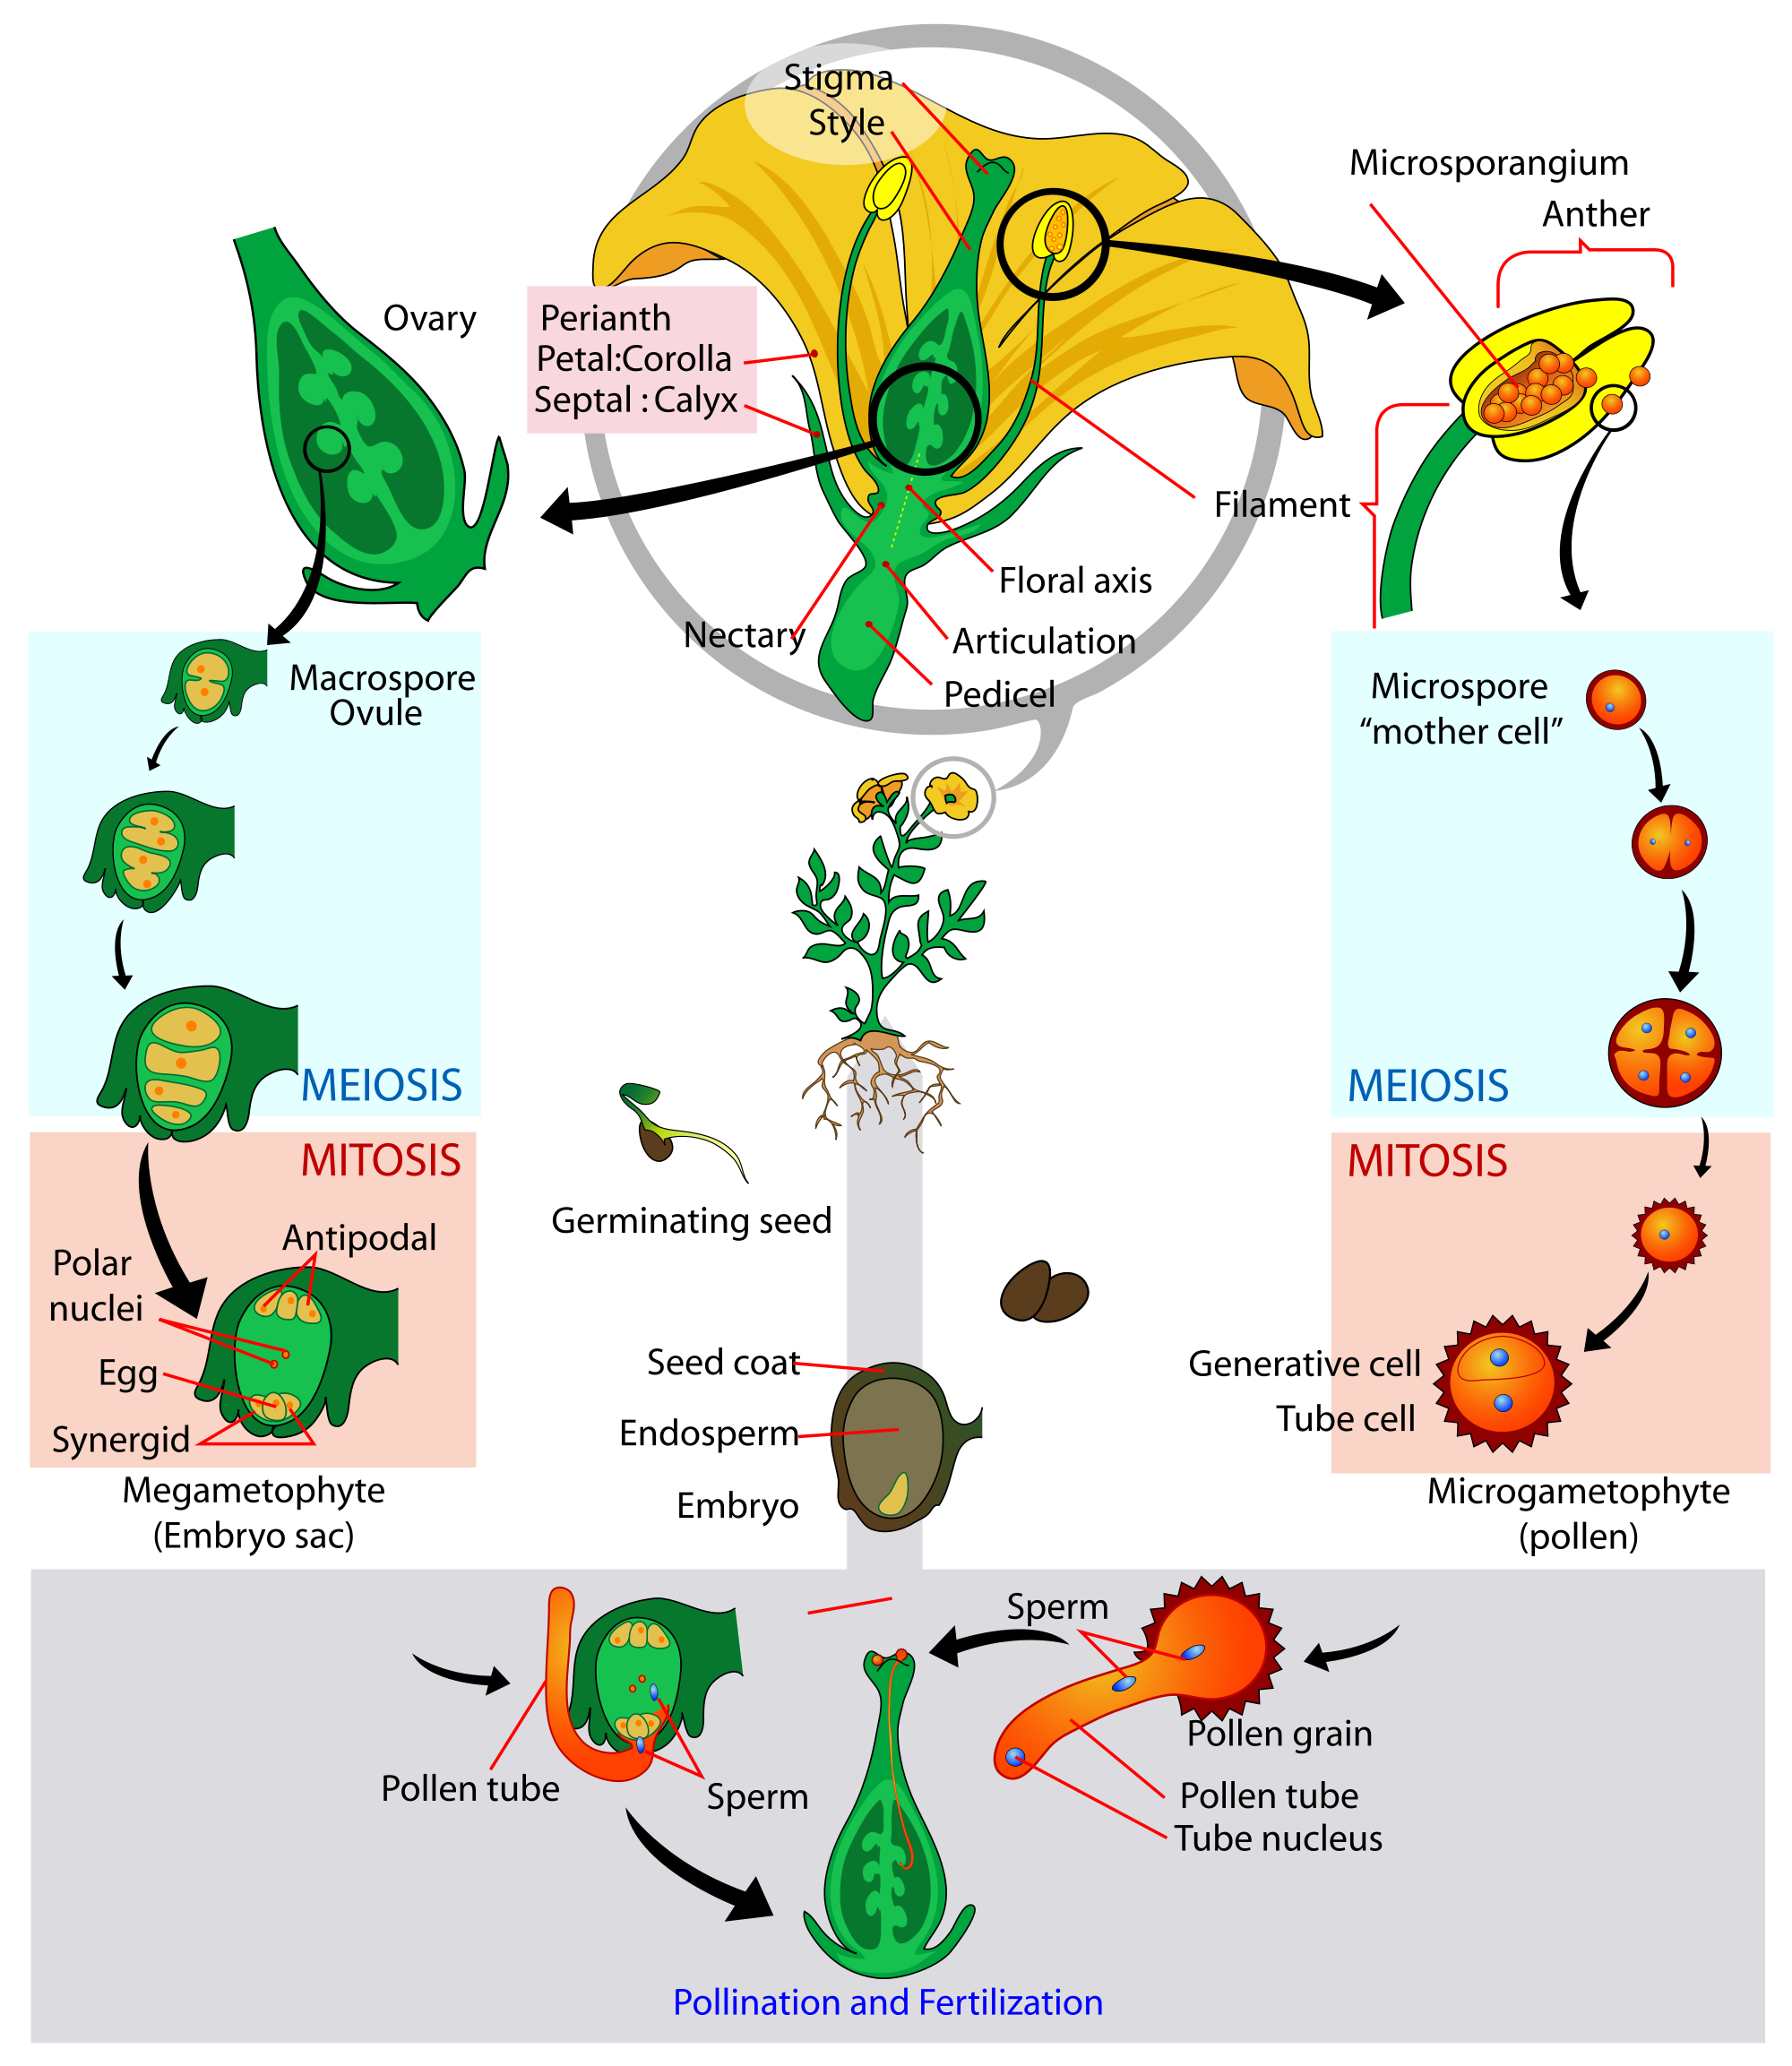 Angiosperm flowering plant diagram. Growth drawing life cycle transparent